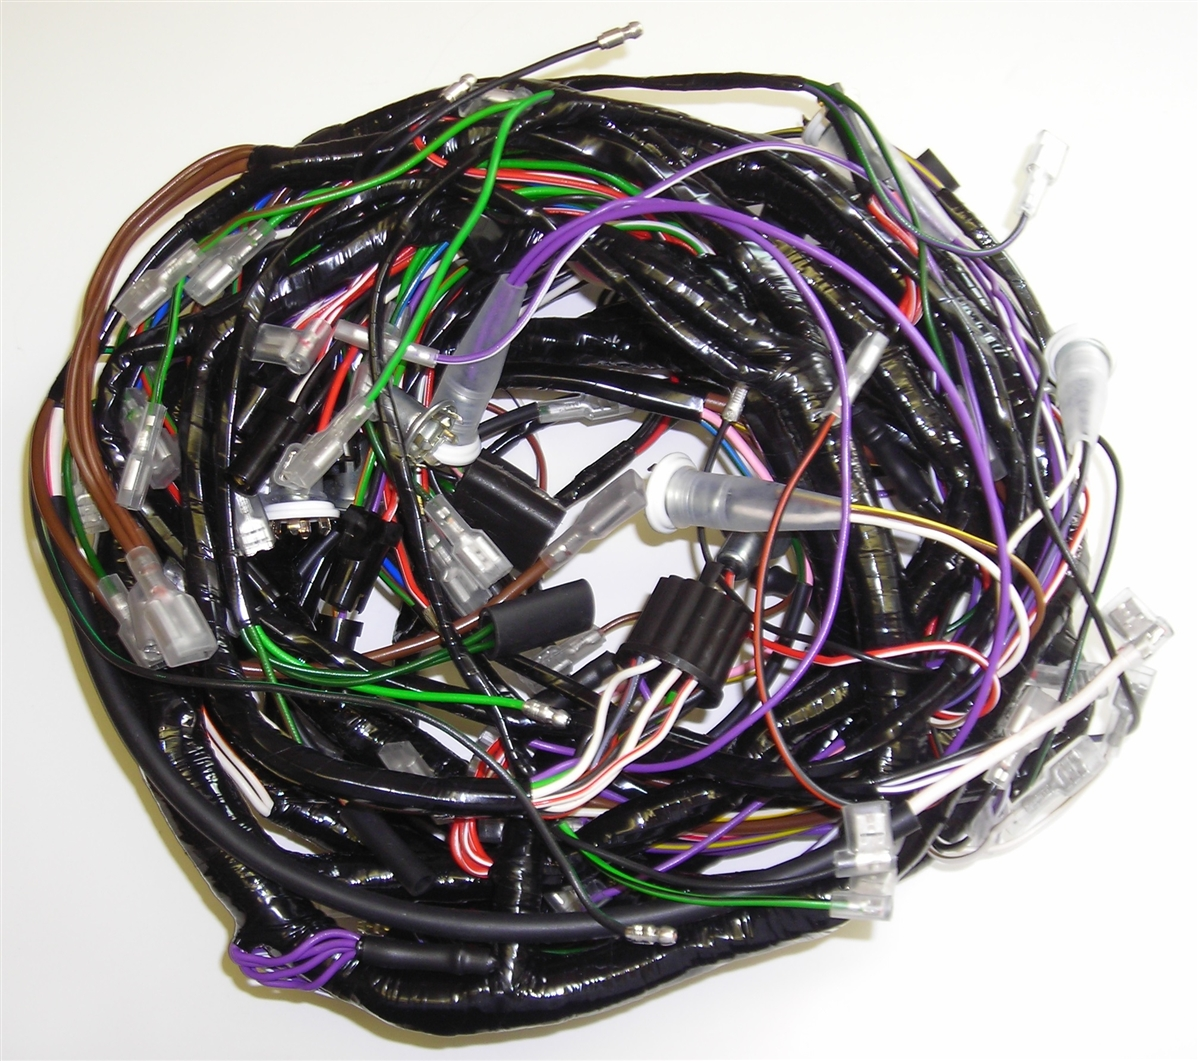 897 2?1371127001 wiring harness triumph tr6 dan masters wiring harness at edmiracle.co